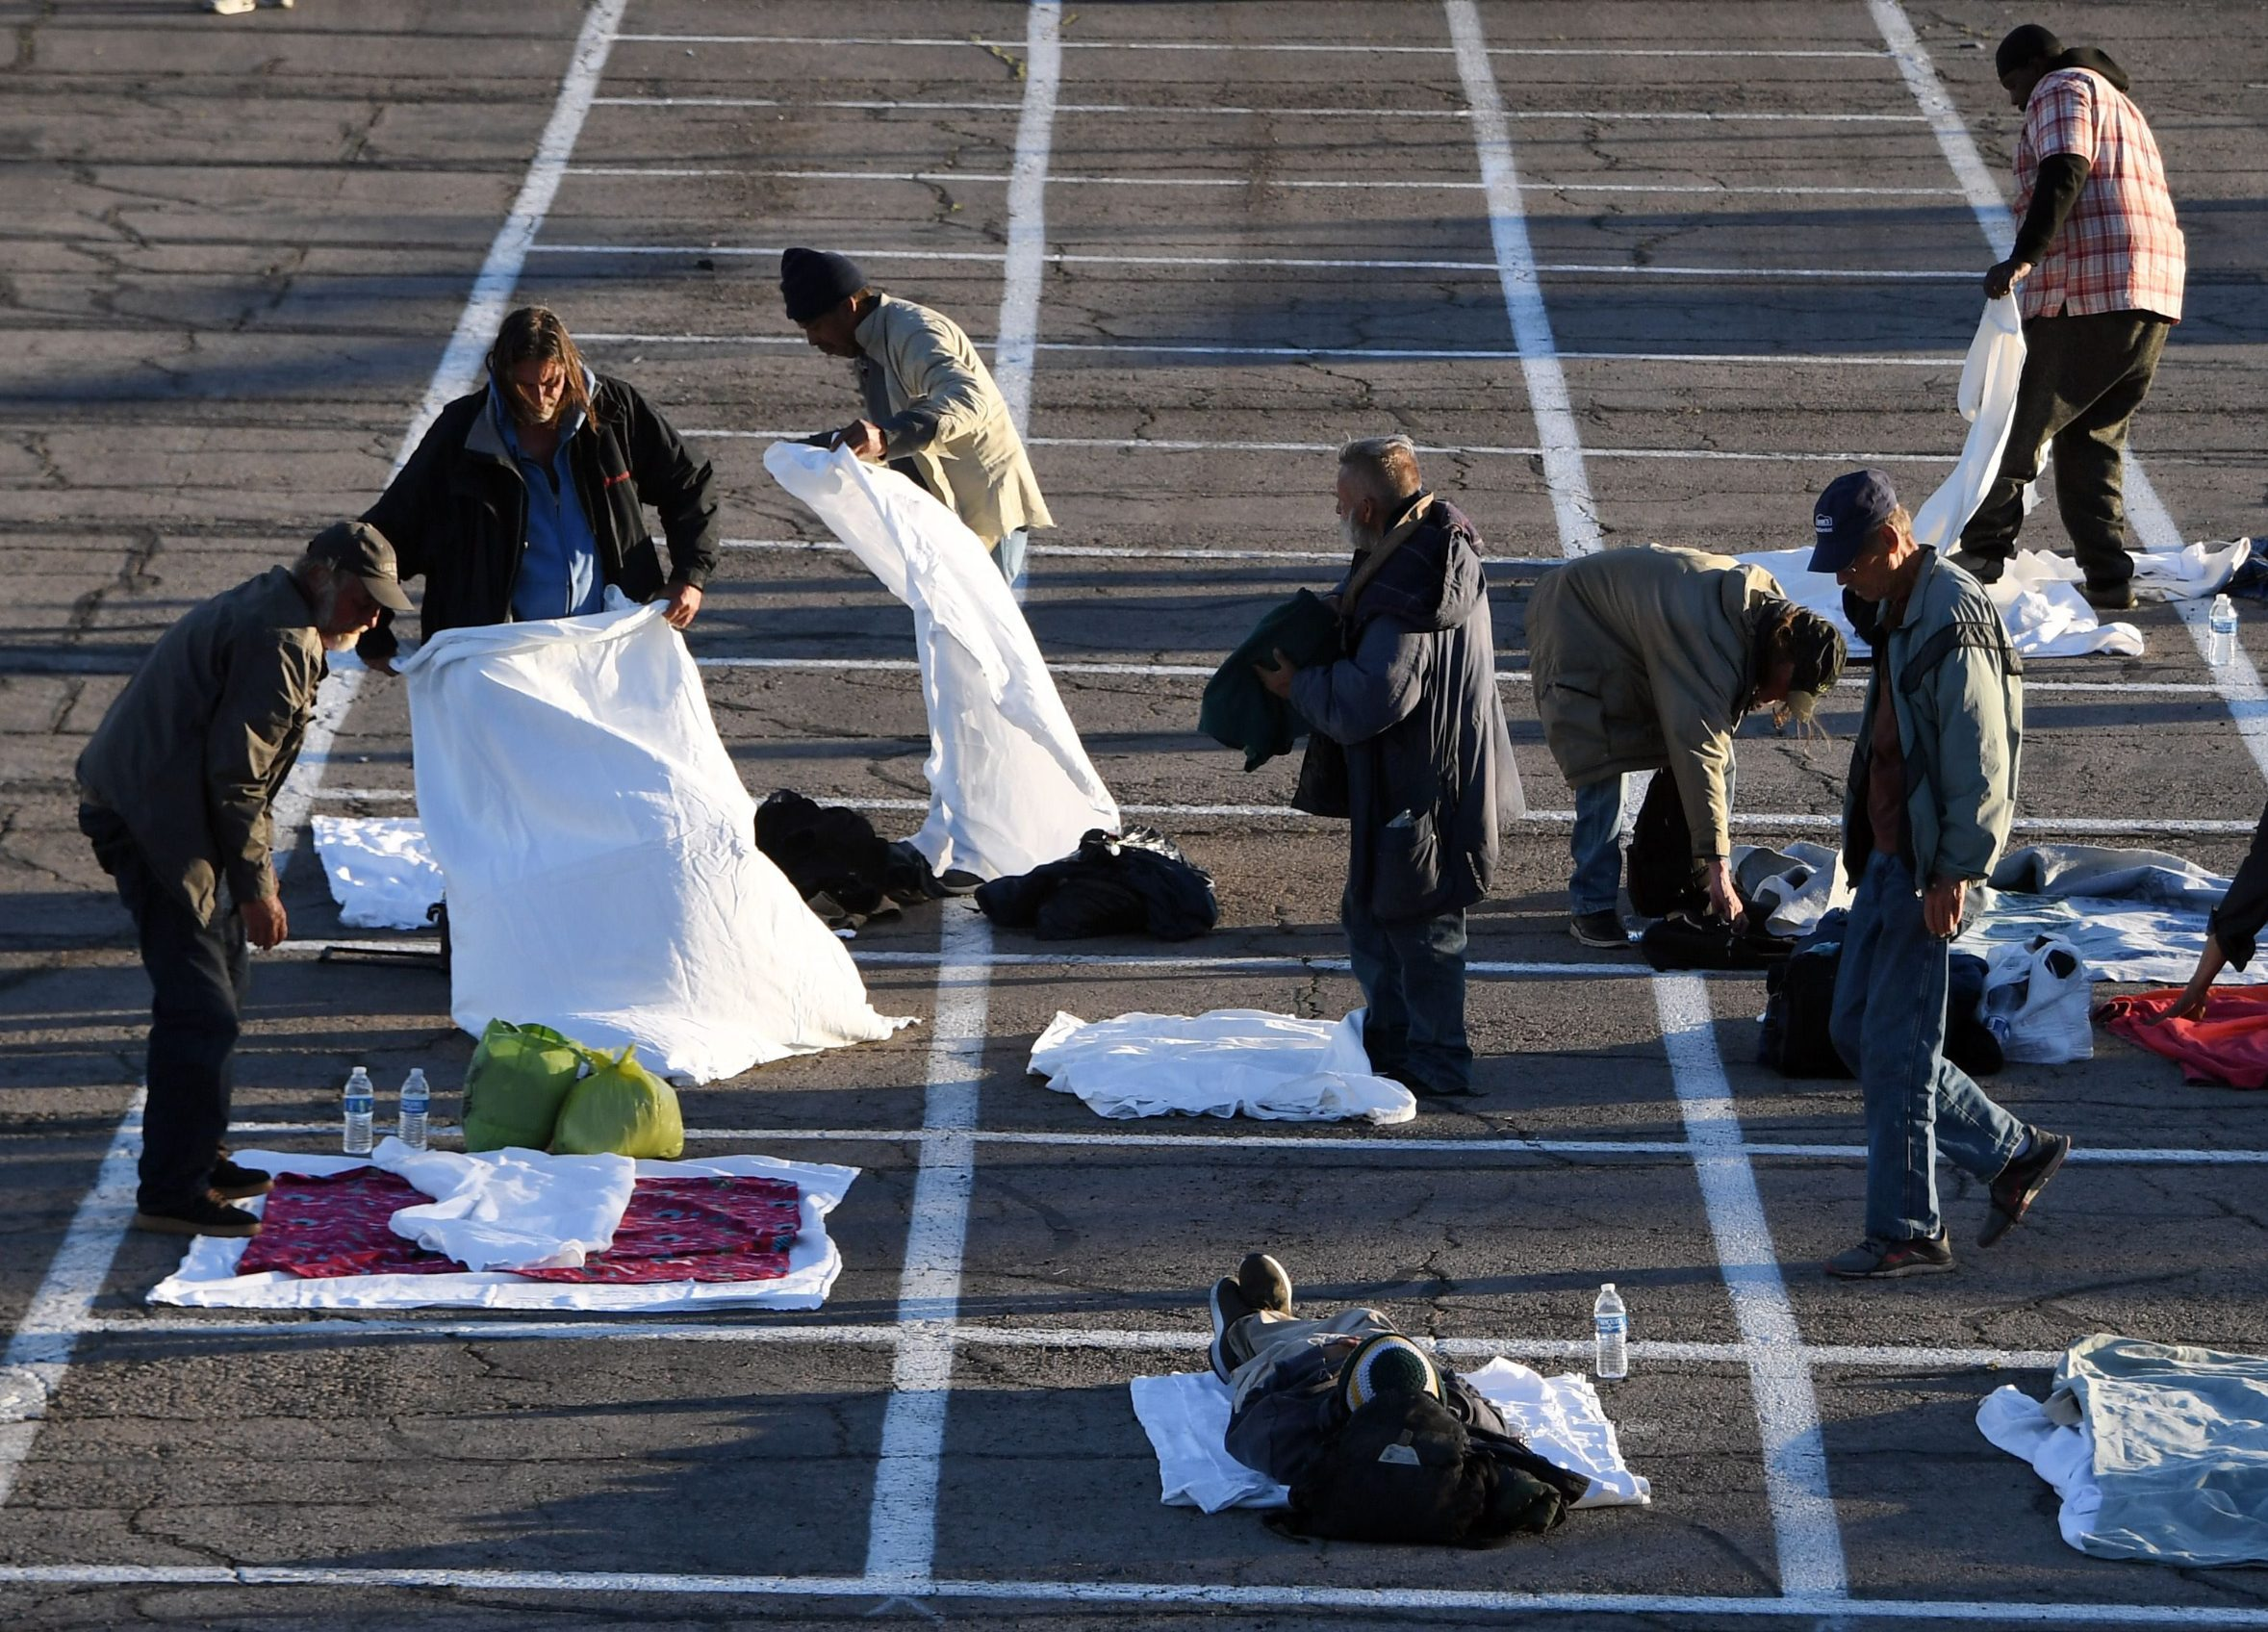 LAS VEGAS, NEVADA - MARCH 30: People arrive at a temporary homeless shelter set up in a parking lot at Cashman Center on March 30, 2020 in Las Vegas, Nevada. Catholic Charities of Southern Nevada was closed last week after a homeless man who used their services tested positive for the coronavirus, leaving about 500 people with no overnight shelter. The city of Las Vegas, Clark County and local homeless providers plan to operate the shelter through April 3rd when it is anticipated that the Catholic Charities facility will be back open. The city is also reserving the building spaces at Cashman Center in case of an overflow of hospital patients. The World Health Organization declared the coronavirus (COVID-19) a global pandemic on March 11th.   Ethan Miller/Getty Images/AFP == FOR NEWSPAPERS, INTERNET, TELCOS & TELEVISION USE ONLY ==